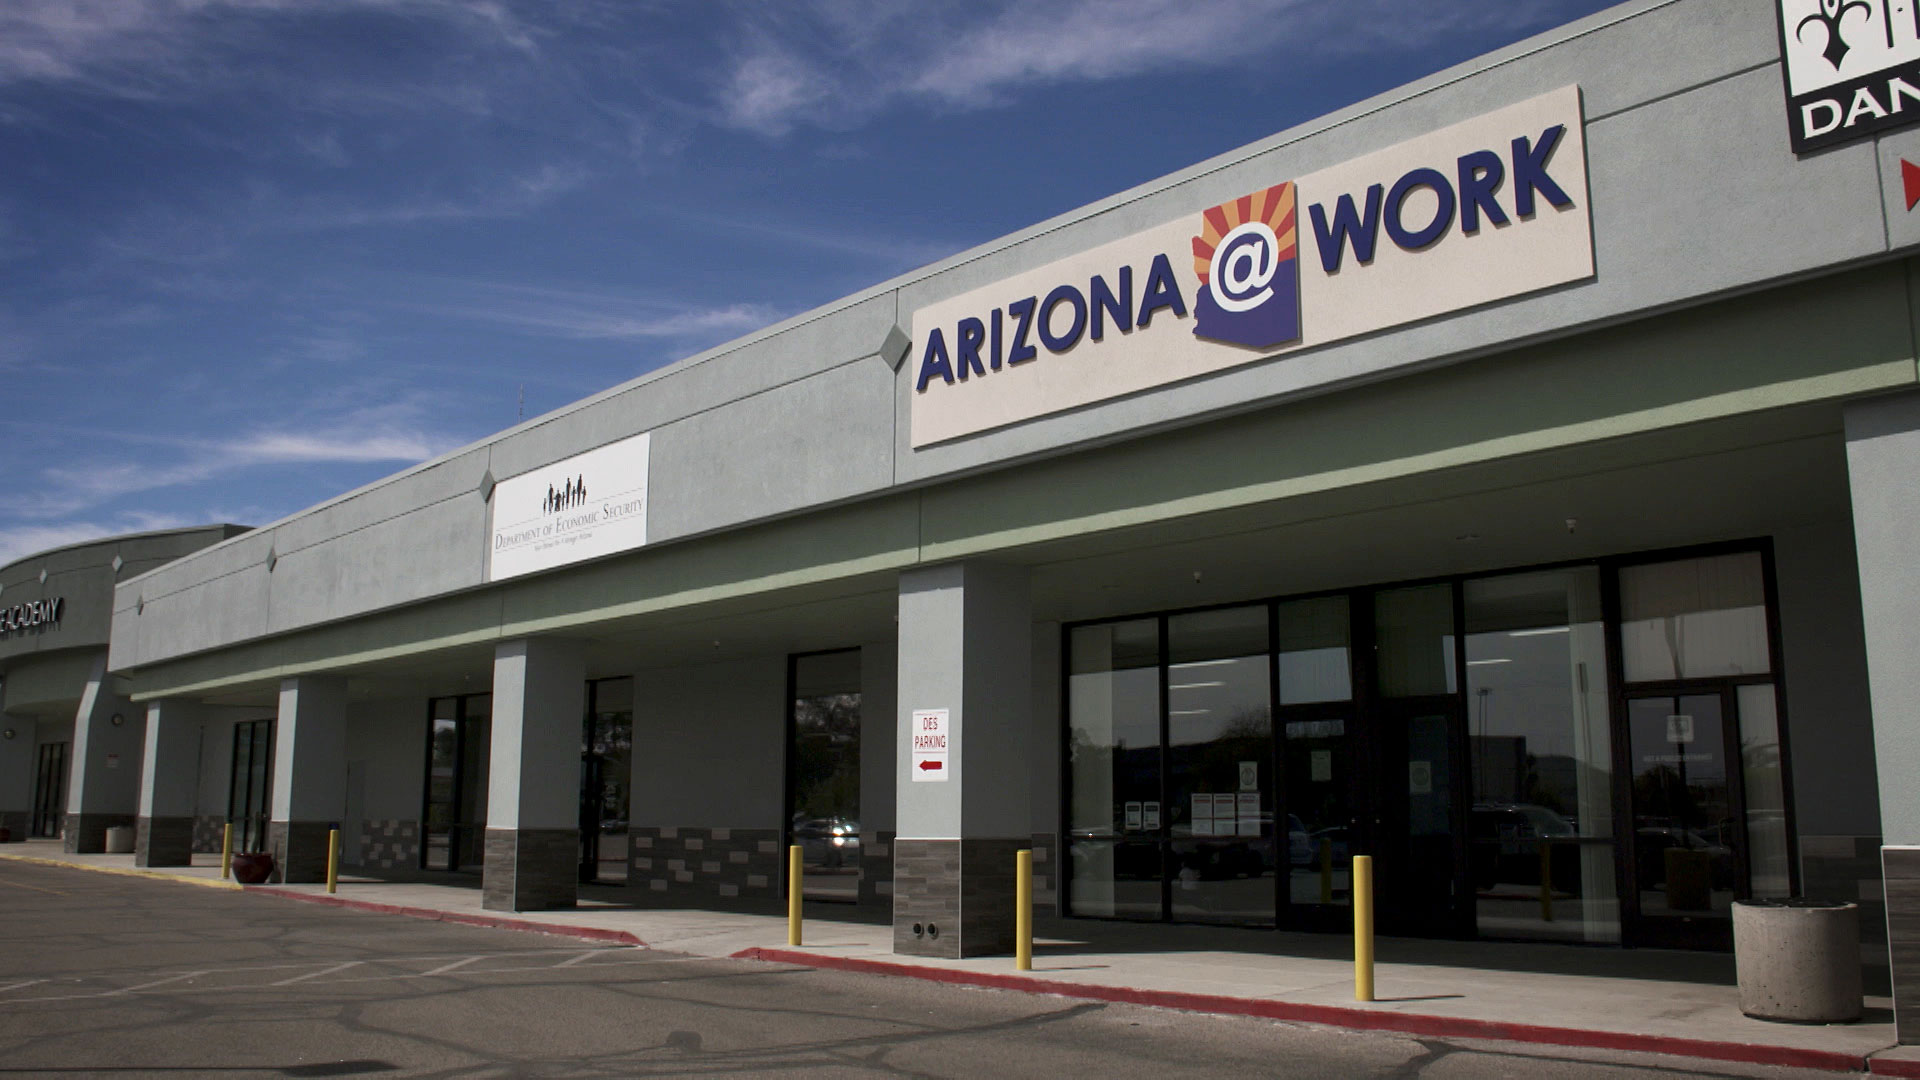 An office for the Arizona Department of Economic Security in Tucson. March 2020.